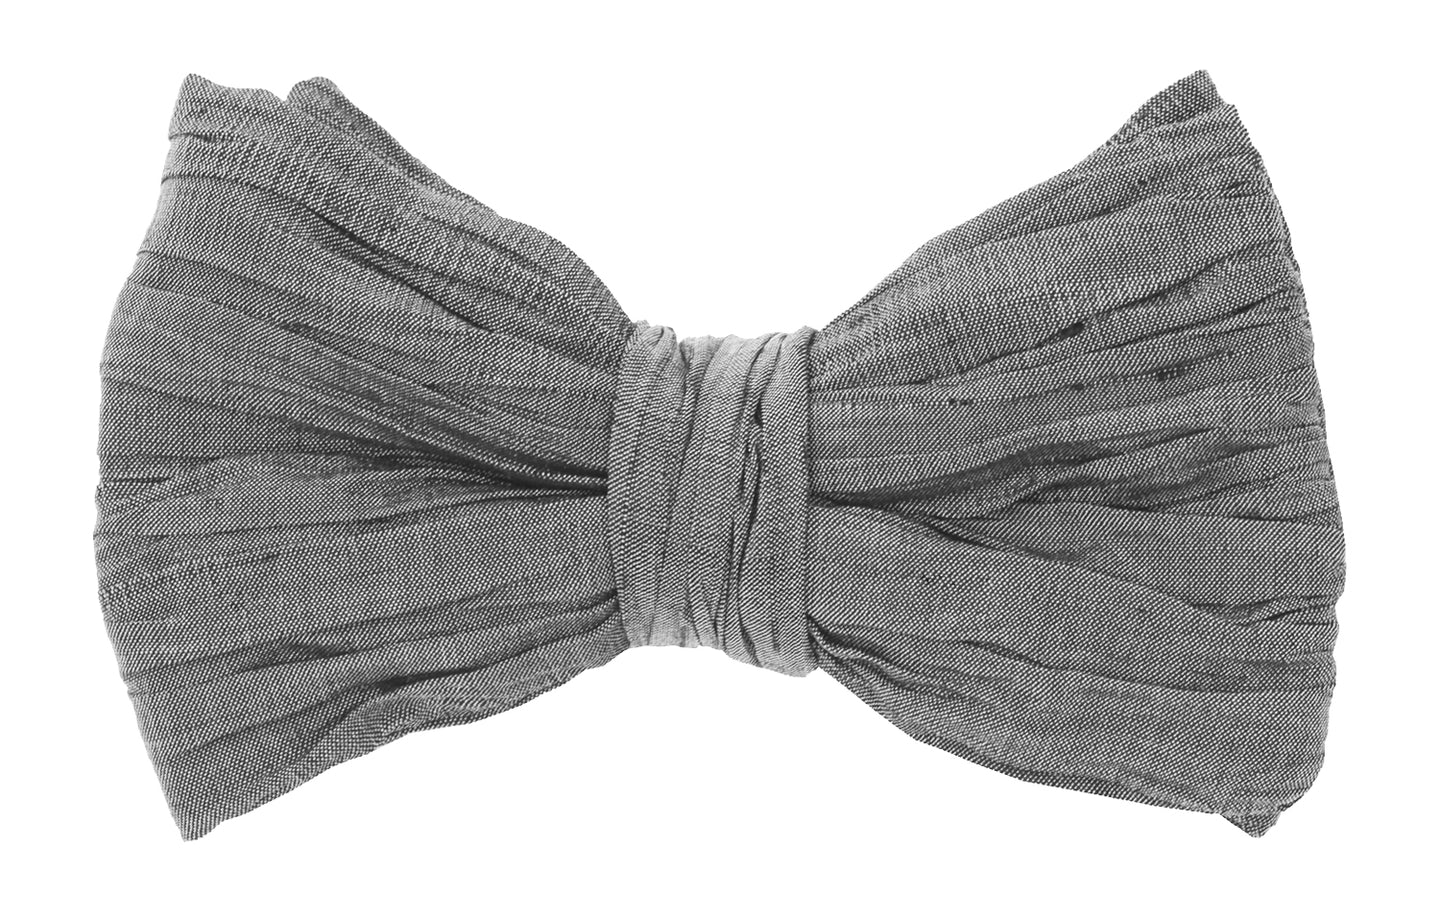 Mimi Fong Silk Pleated Bow Tie in Charcoal